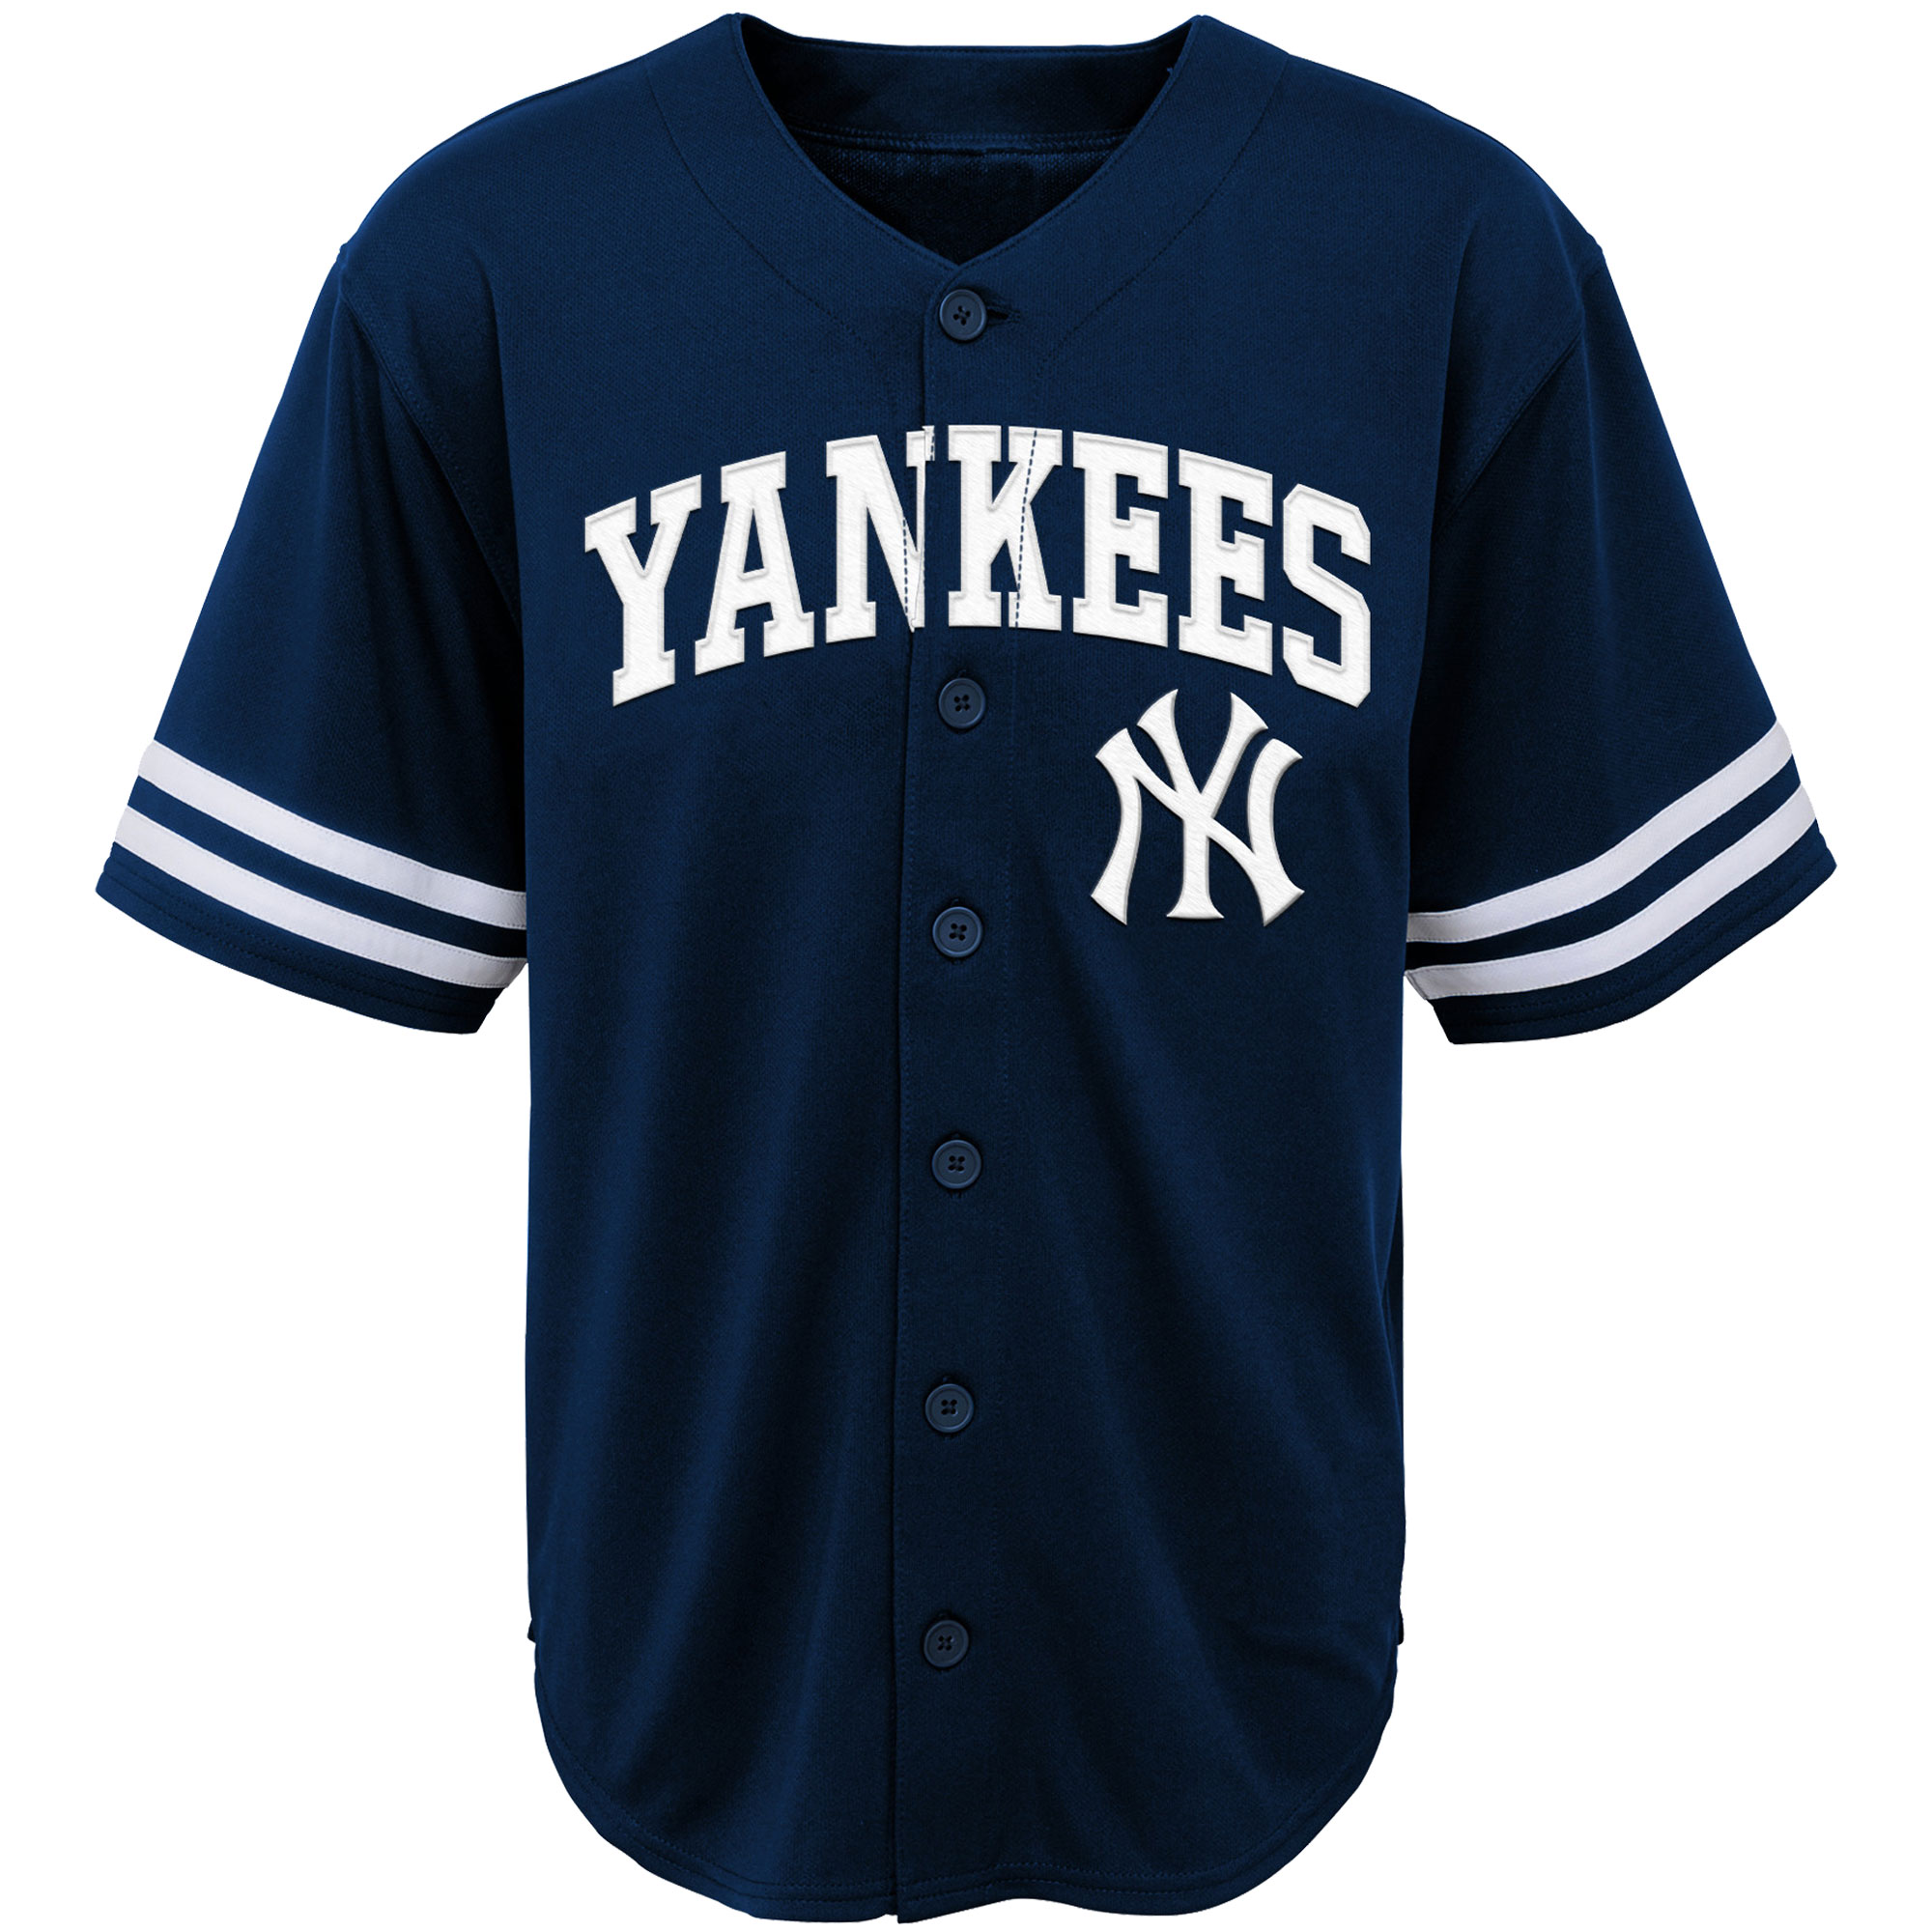 Youth Navy New York Yankees Team Jersey